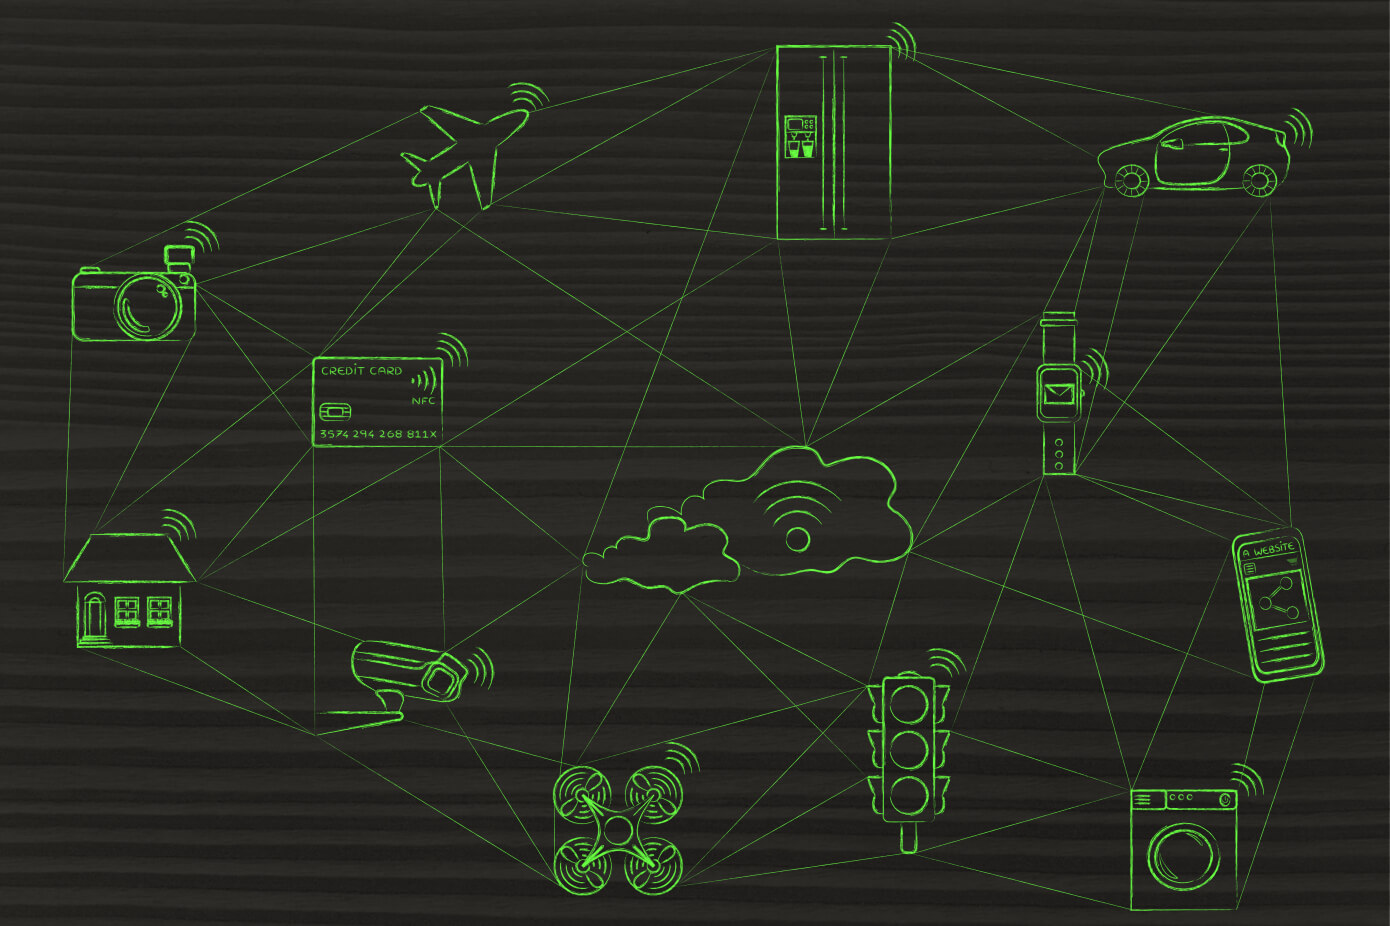 Black background with green images of an internet of things (iot): cloud, credit card, smartwatch, and more [Unioncrate]